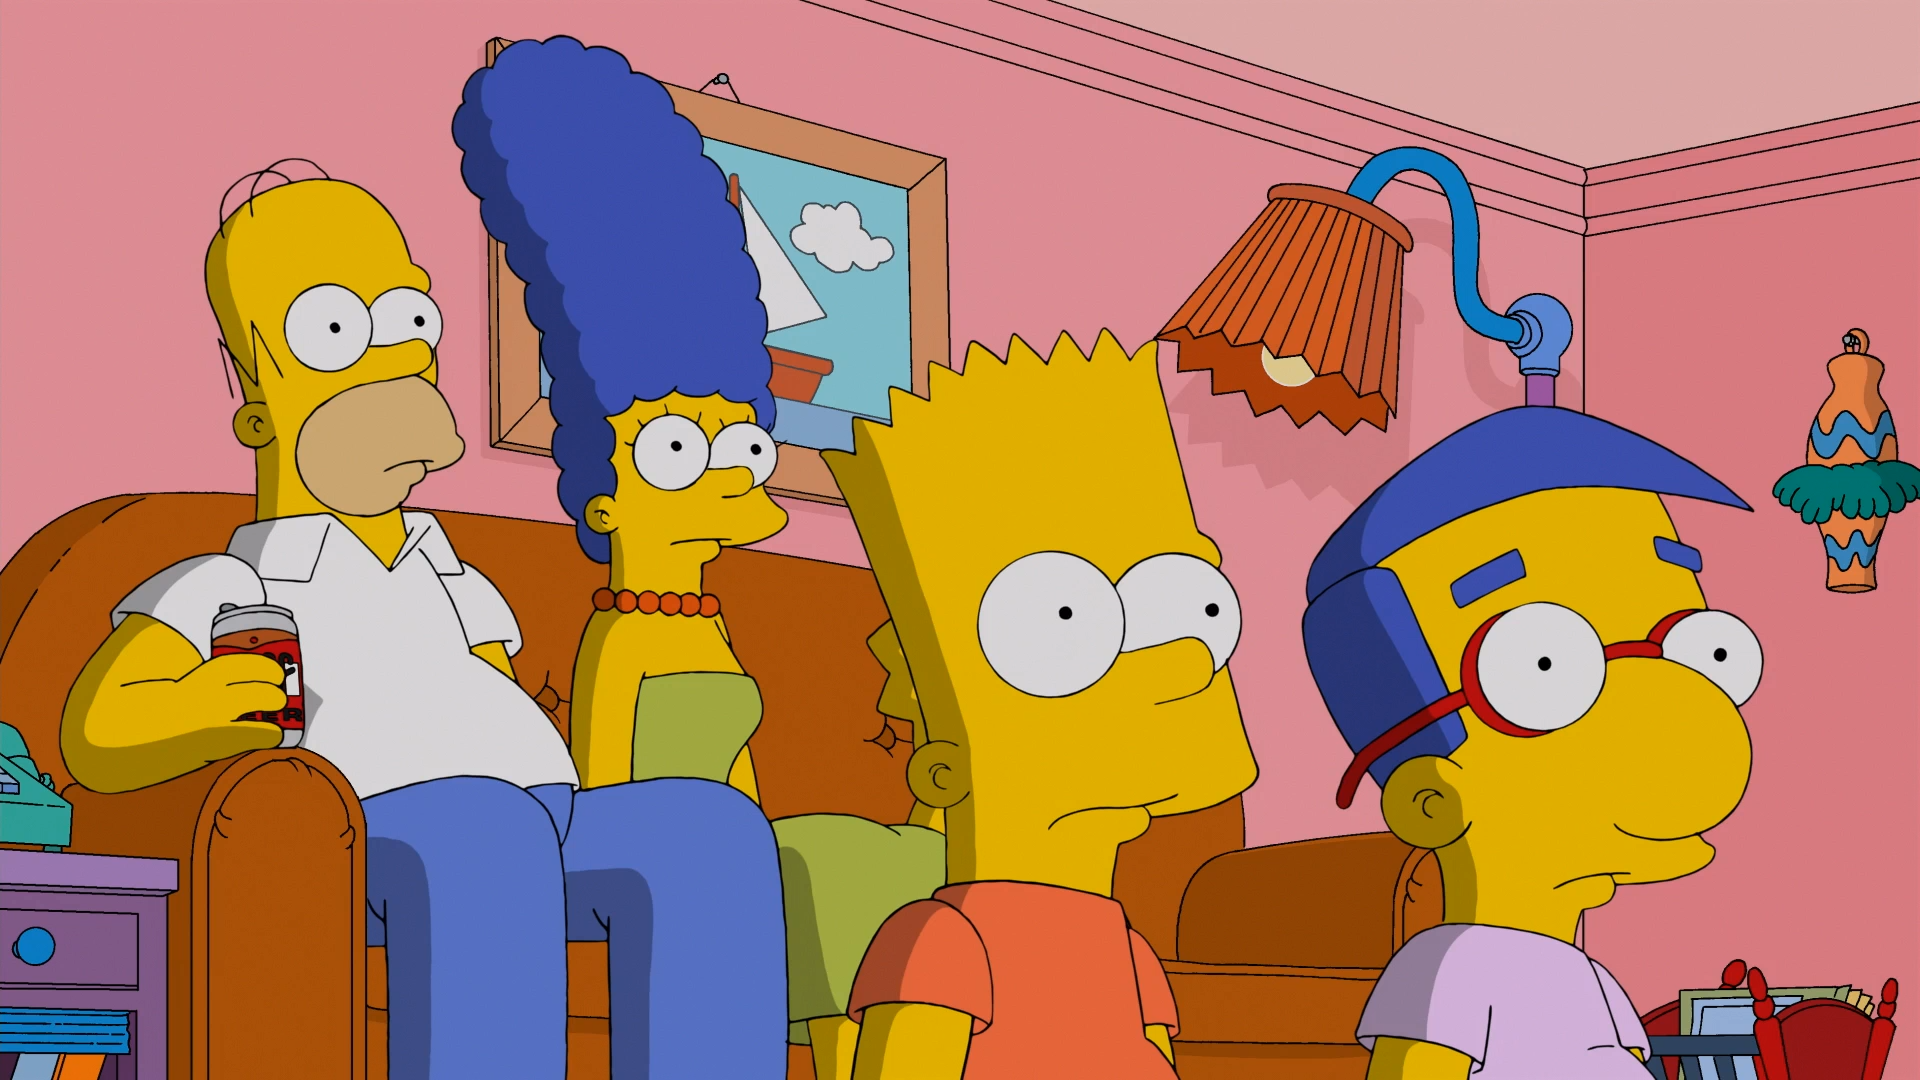 an analysis of an episode of the simpsons about having a soul